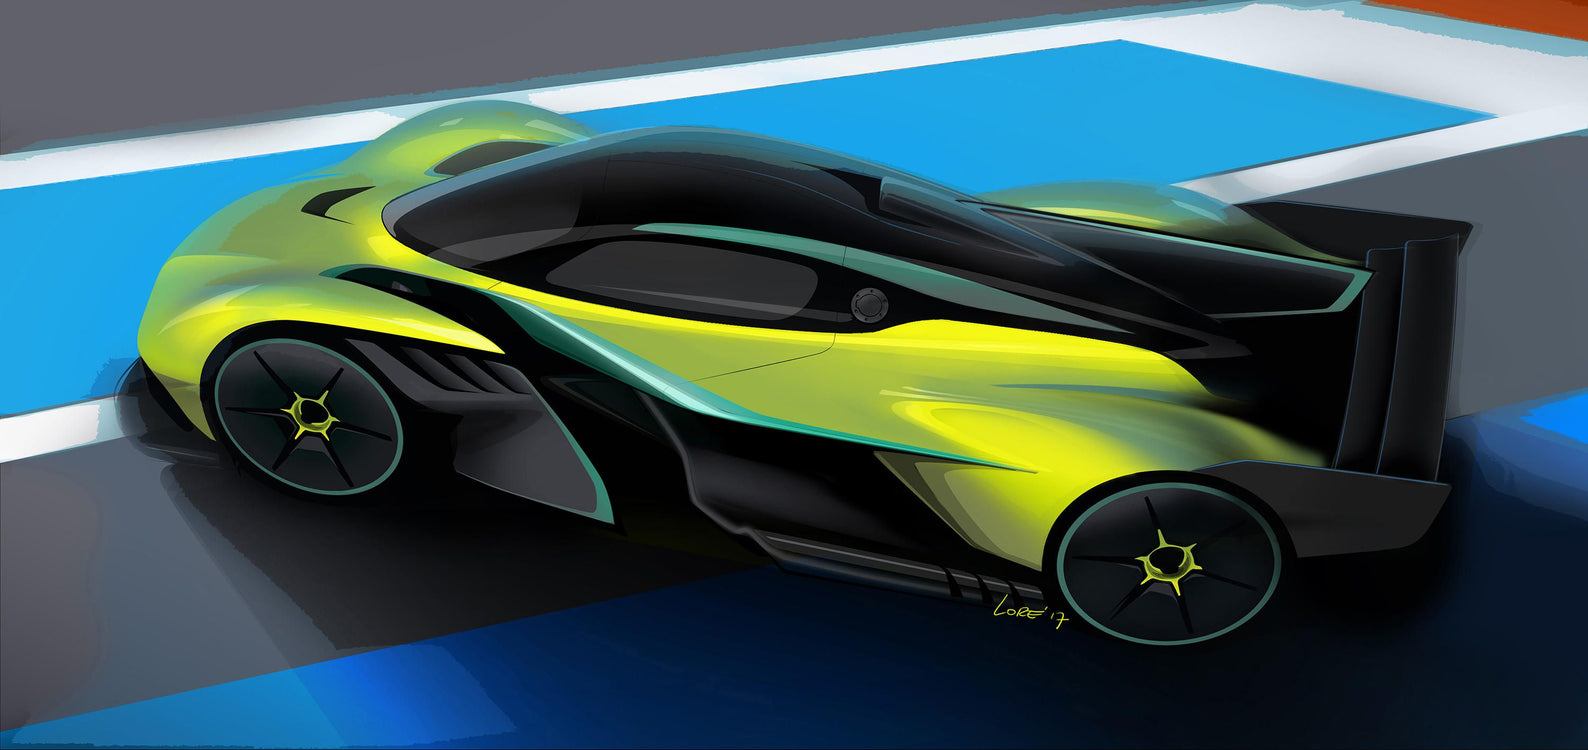 The Aston Martin Valkyrie AMR Pro is The Most Insane Track Toy to Date